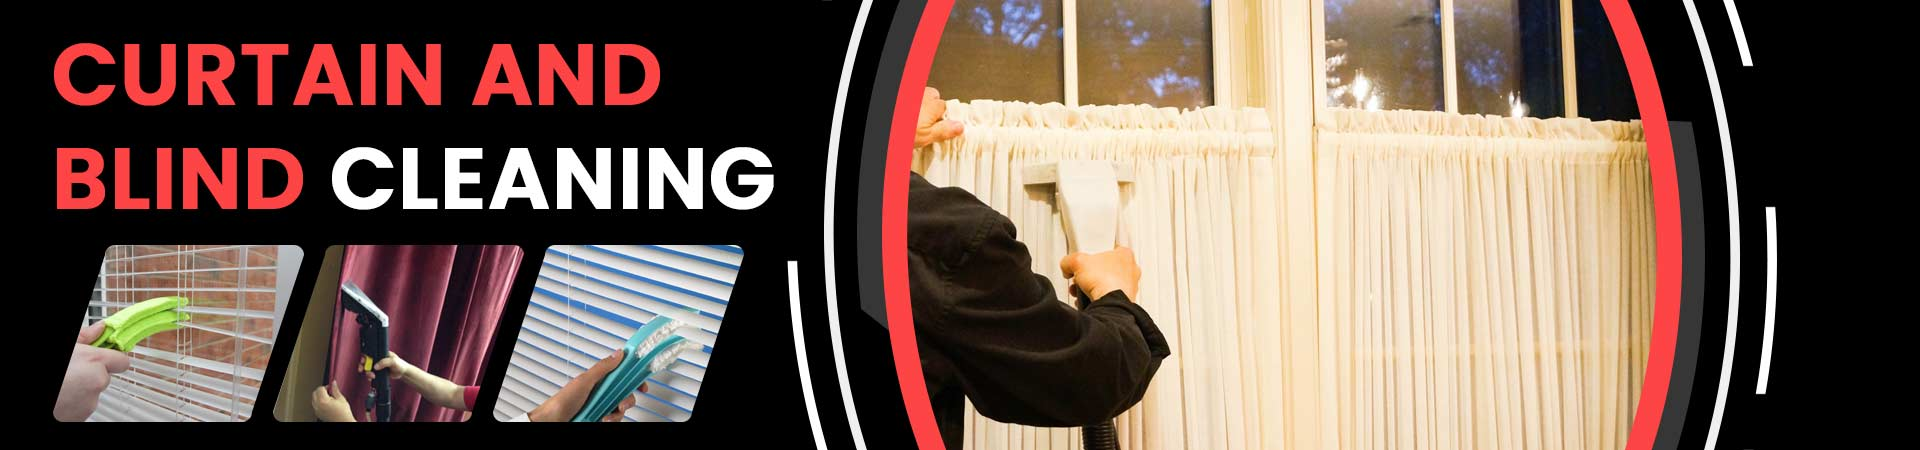 Curtain & Blind Cleaning Brisbane